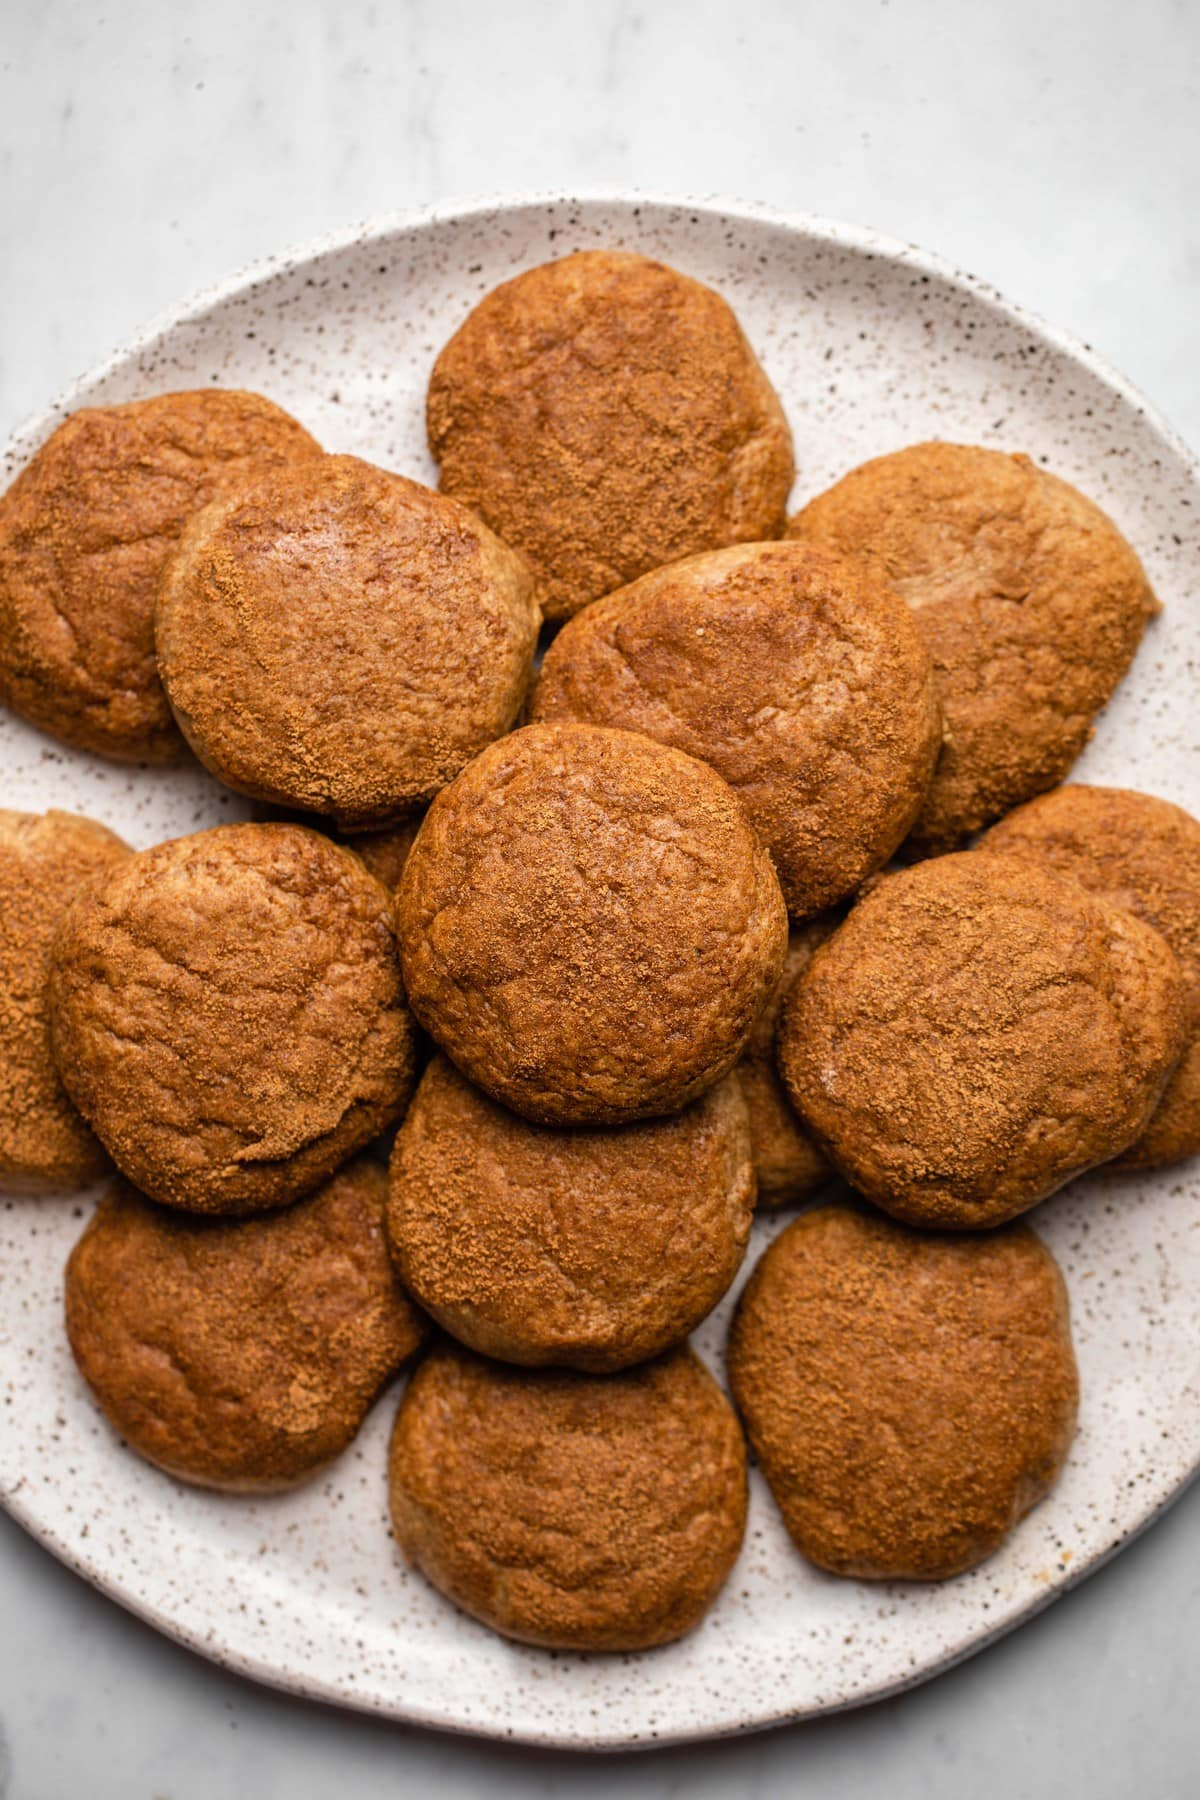 pile of snickerdoodle cookies on white speckled plate